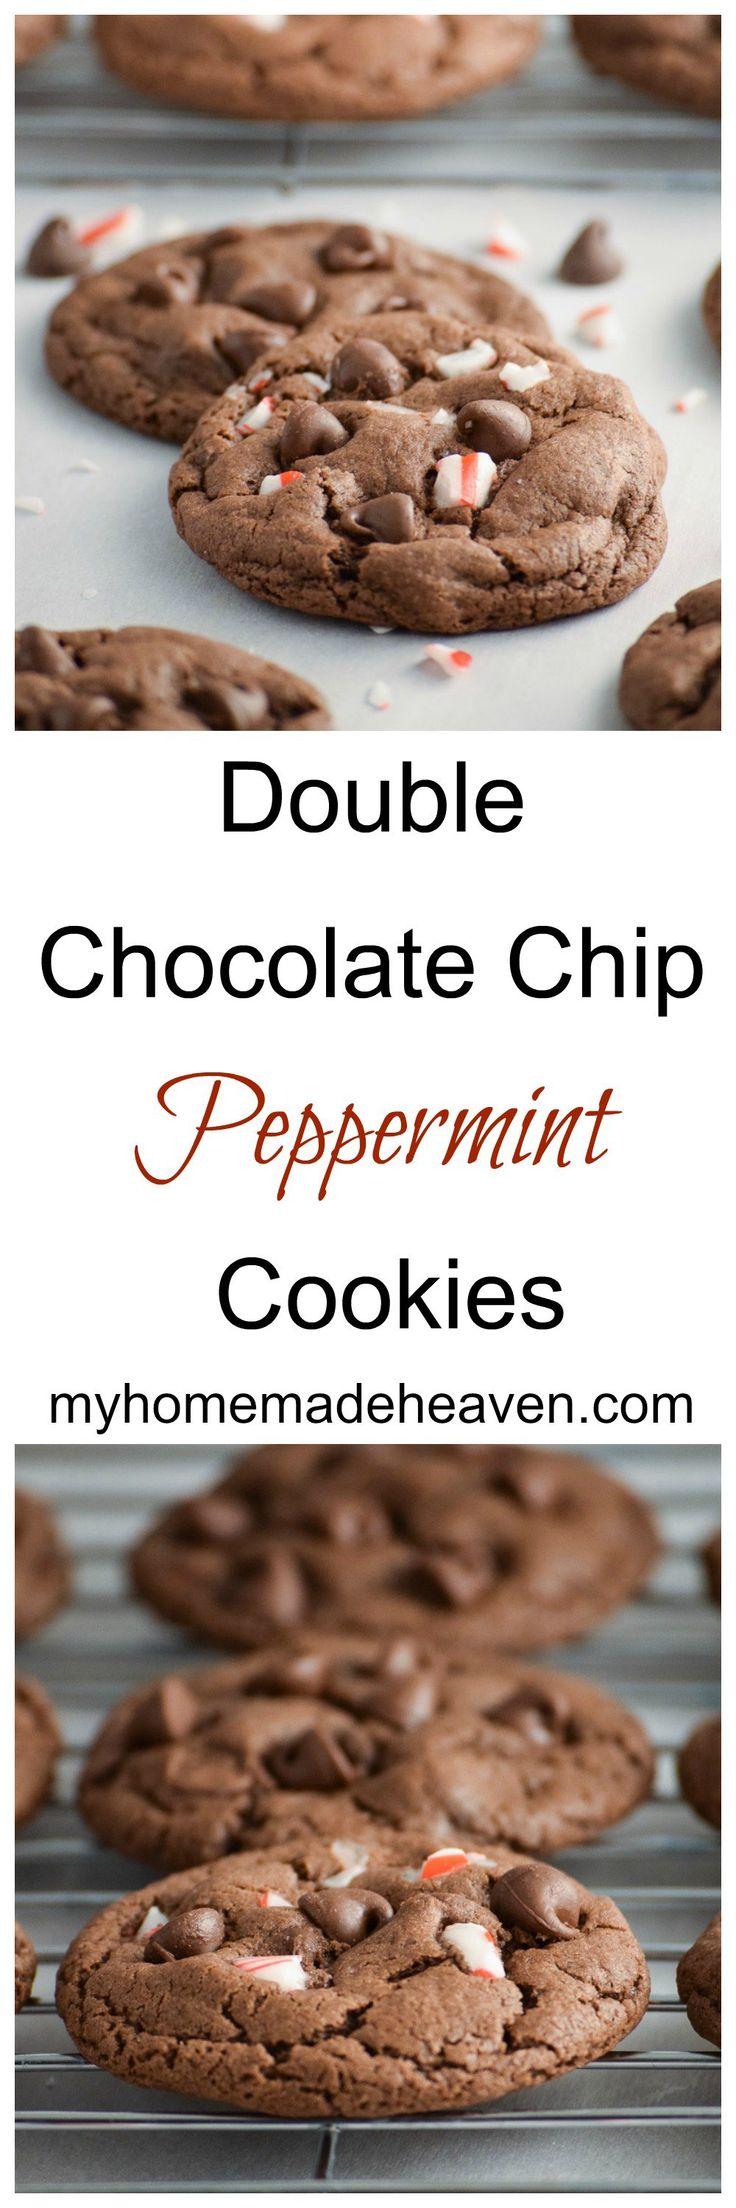 cookies cookies double double chocolate chip cookies chocolate ...